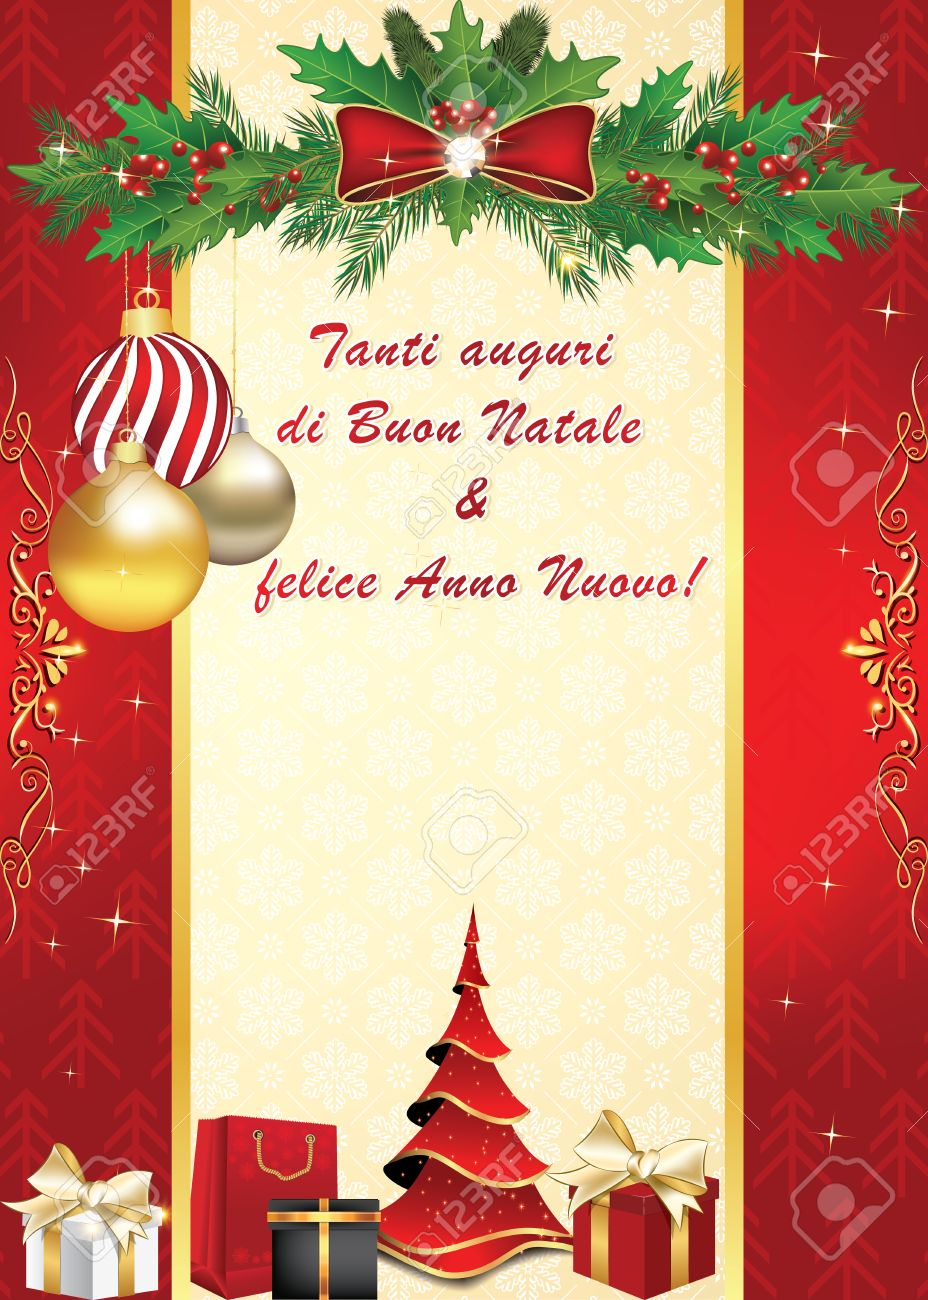 Buon Natale Immagini Auguri.We Wish You Merry Christmas And Happy New Year Italian Language